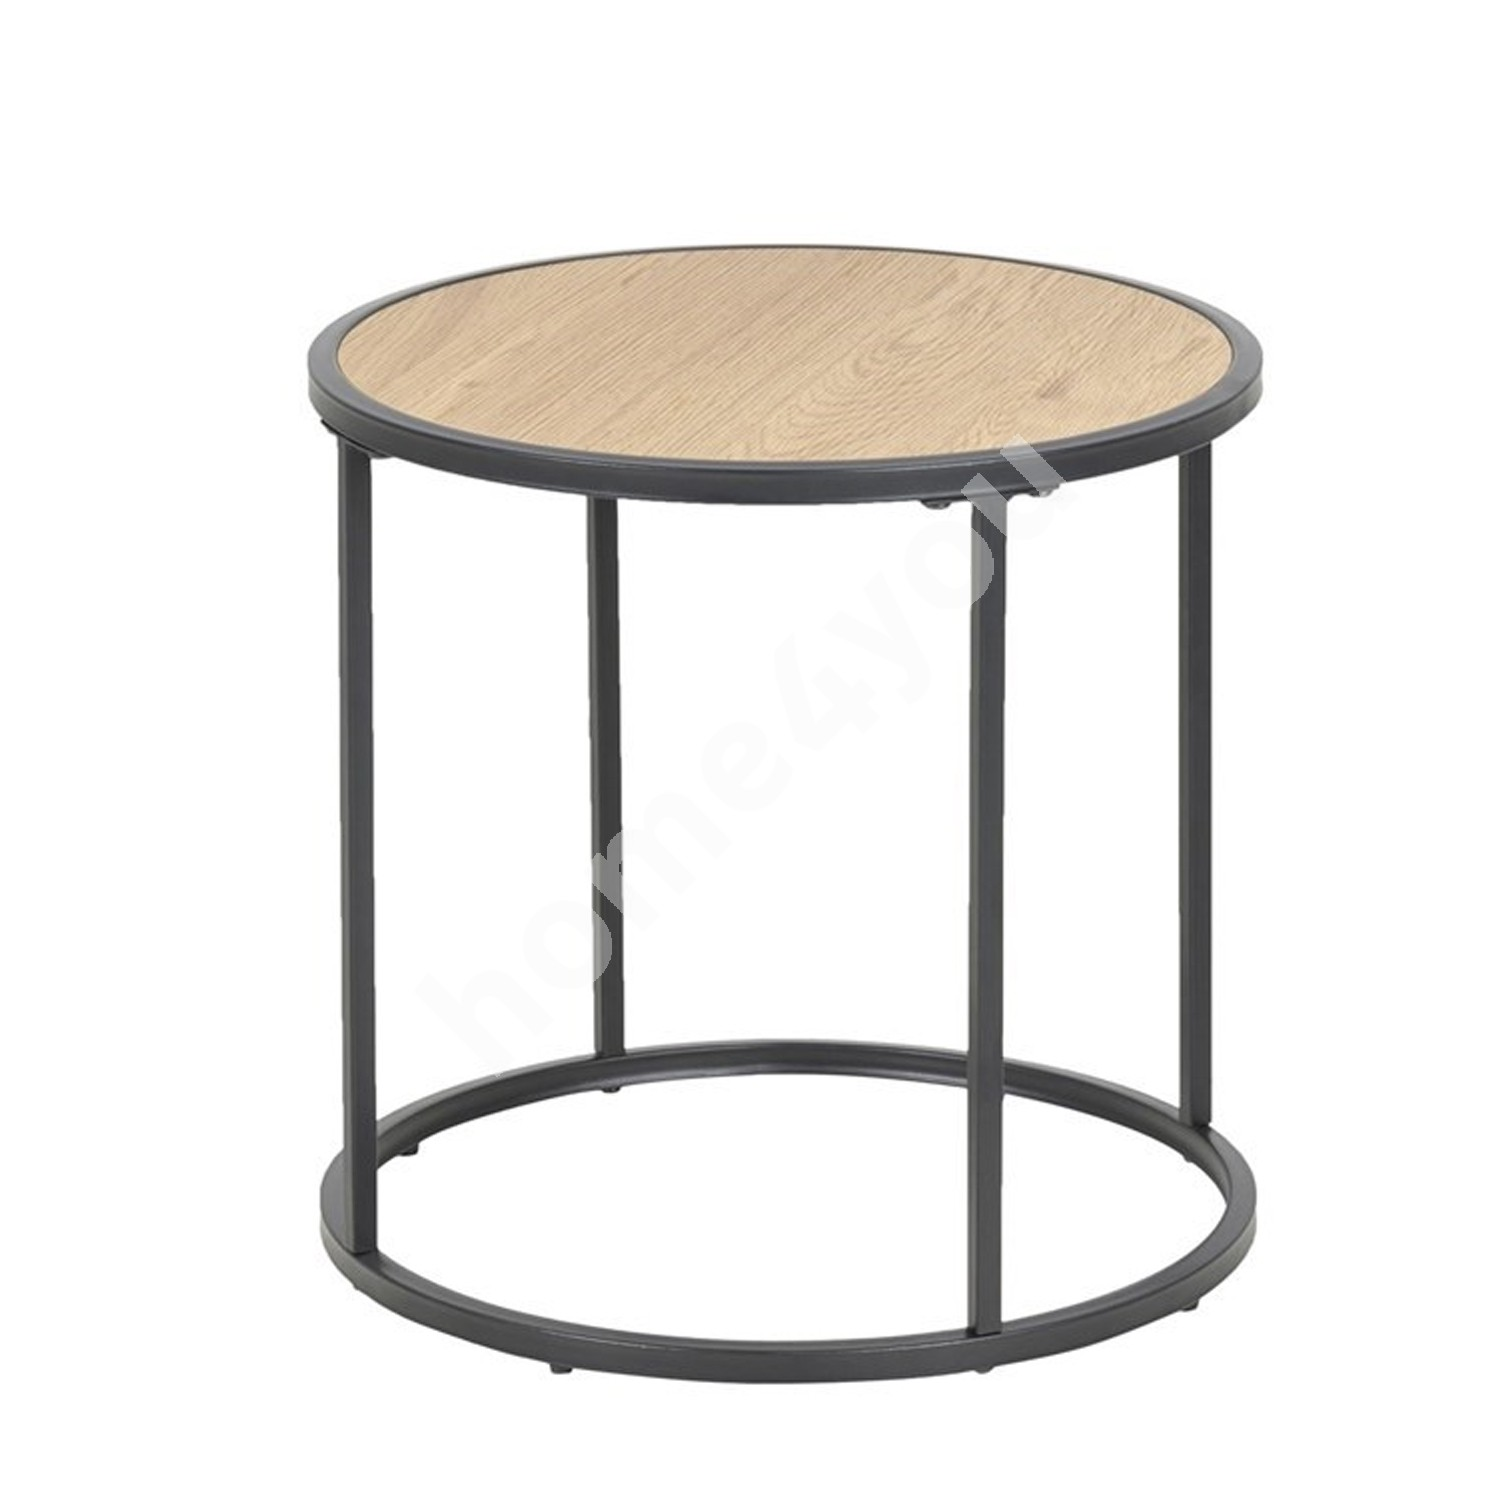 Side table SEAFORD D45xH43cm, table top: laminated particle board, color: oak, frame: black metal